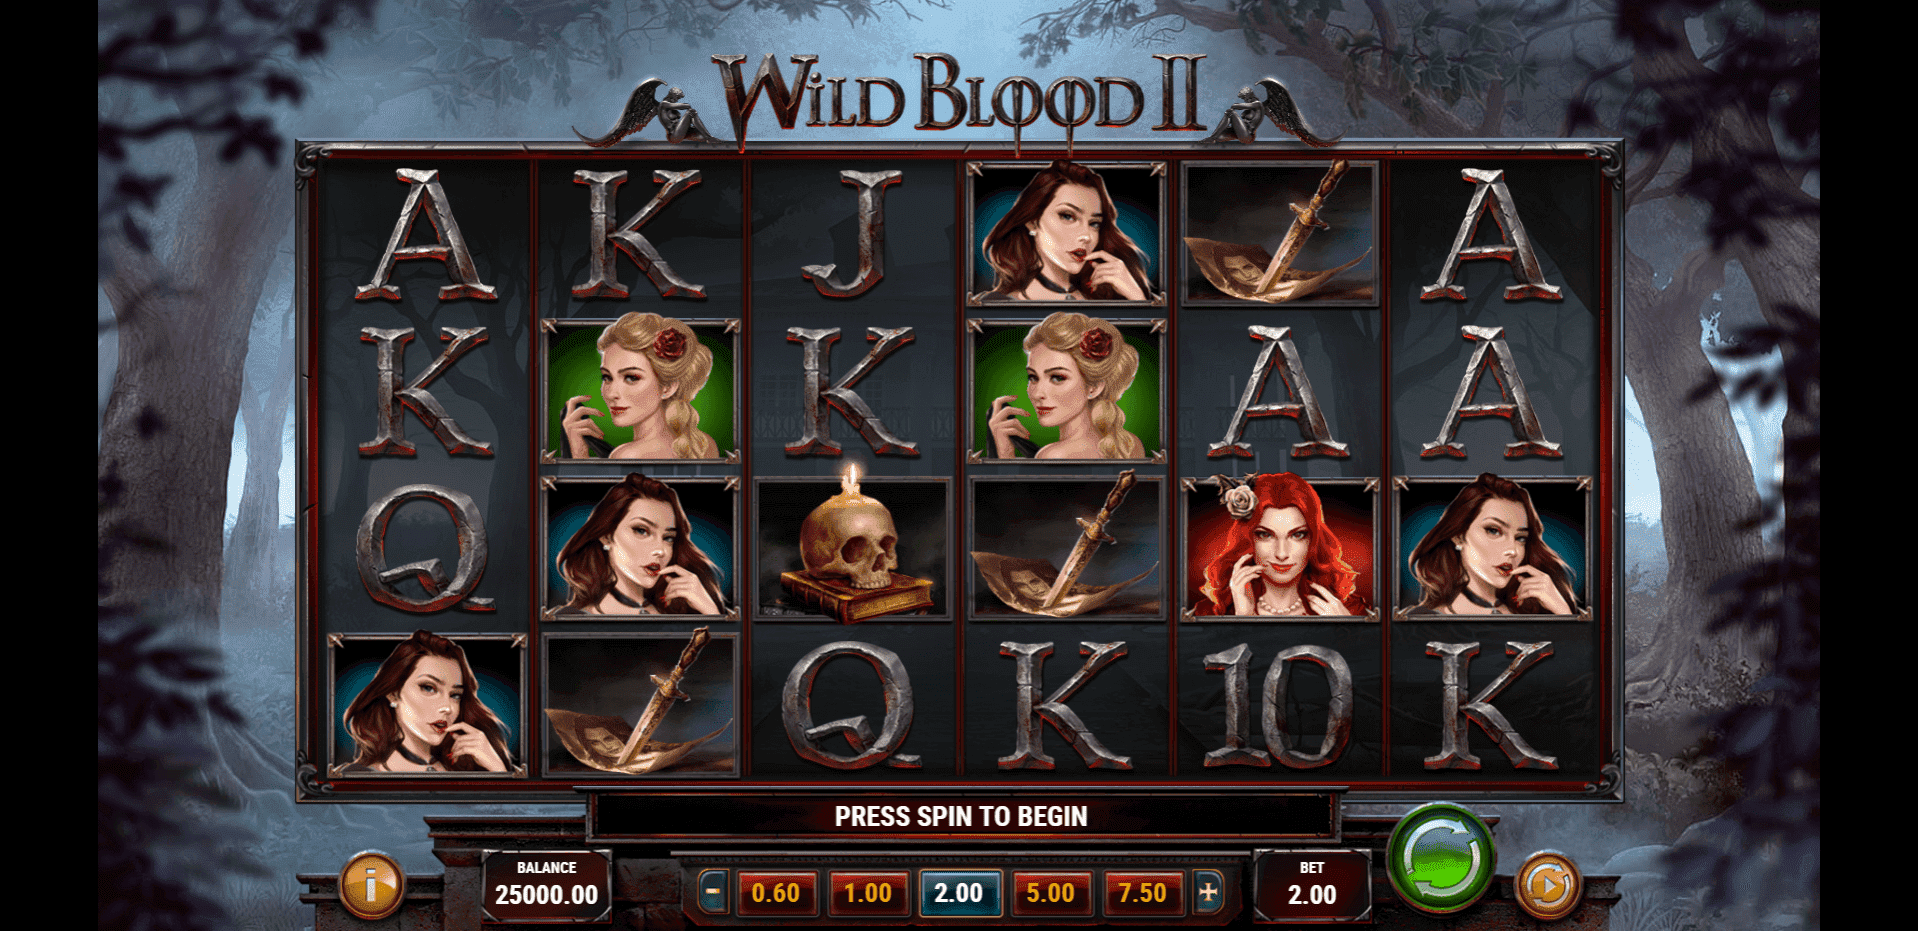 Wild Blood 2 slot machine screenshot